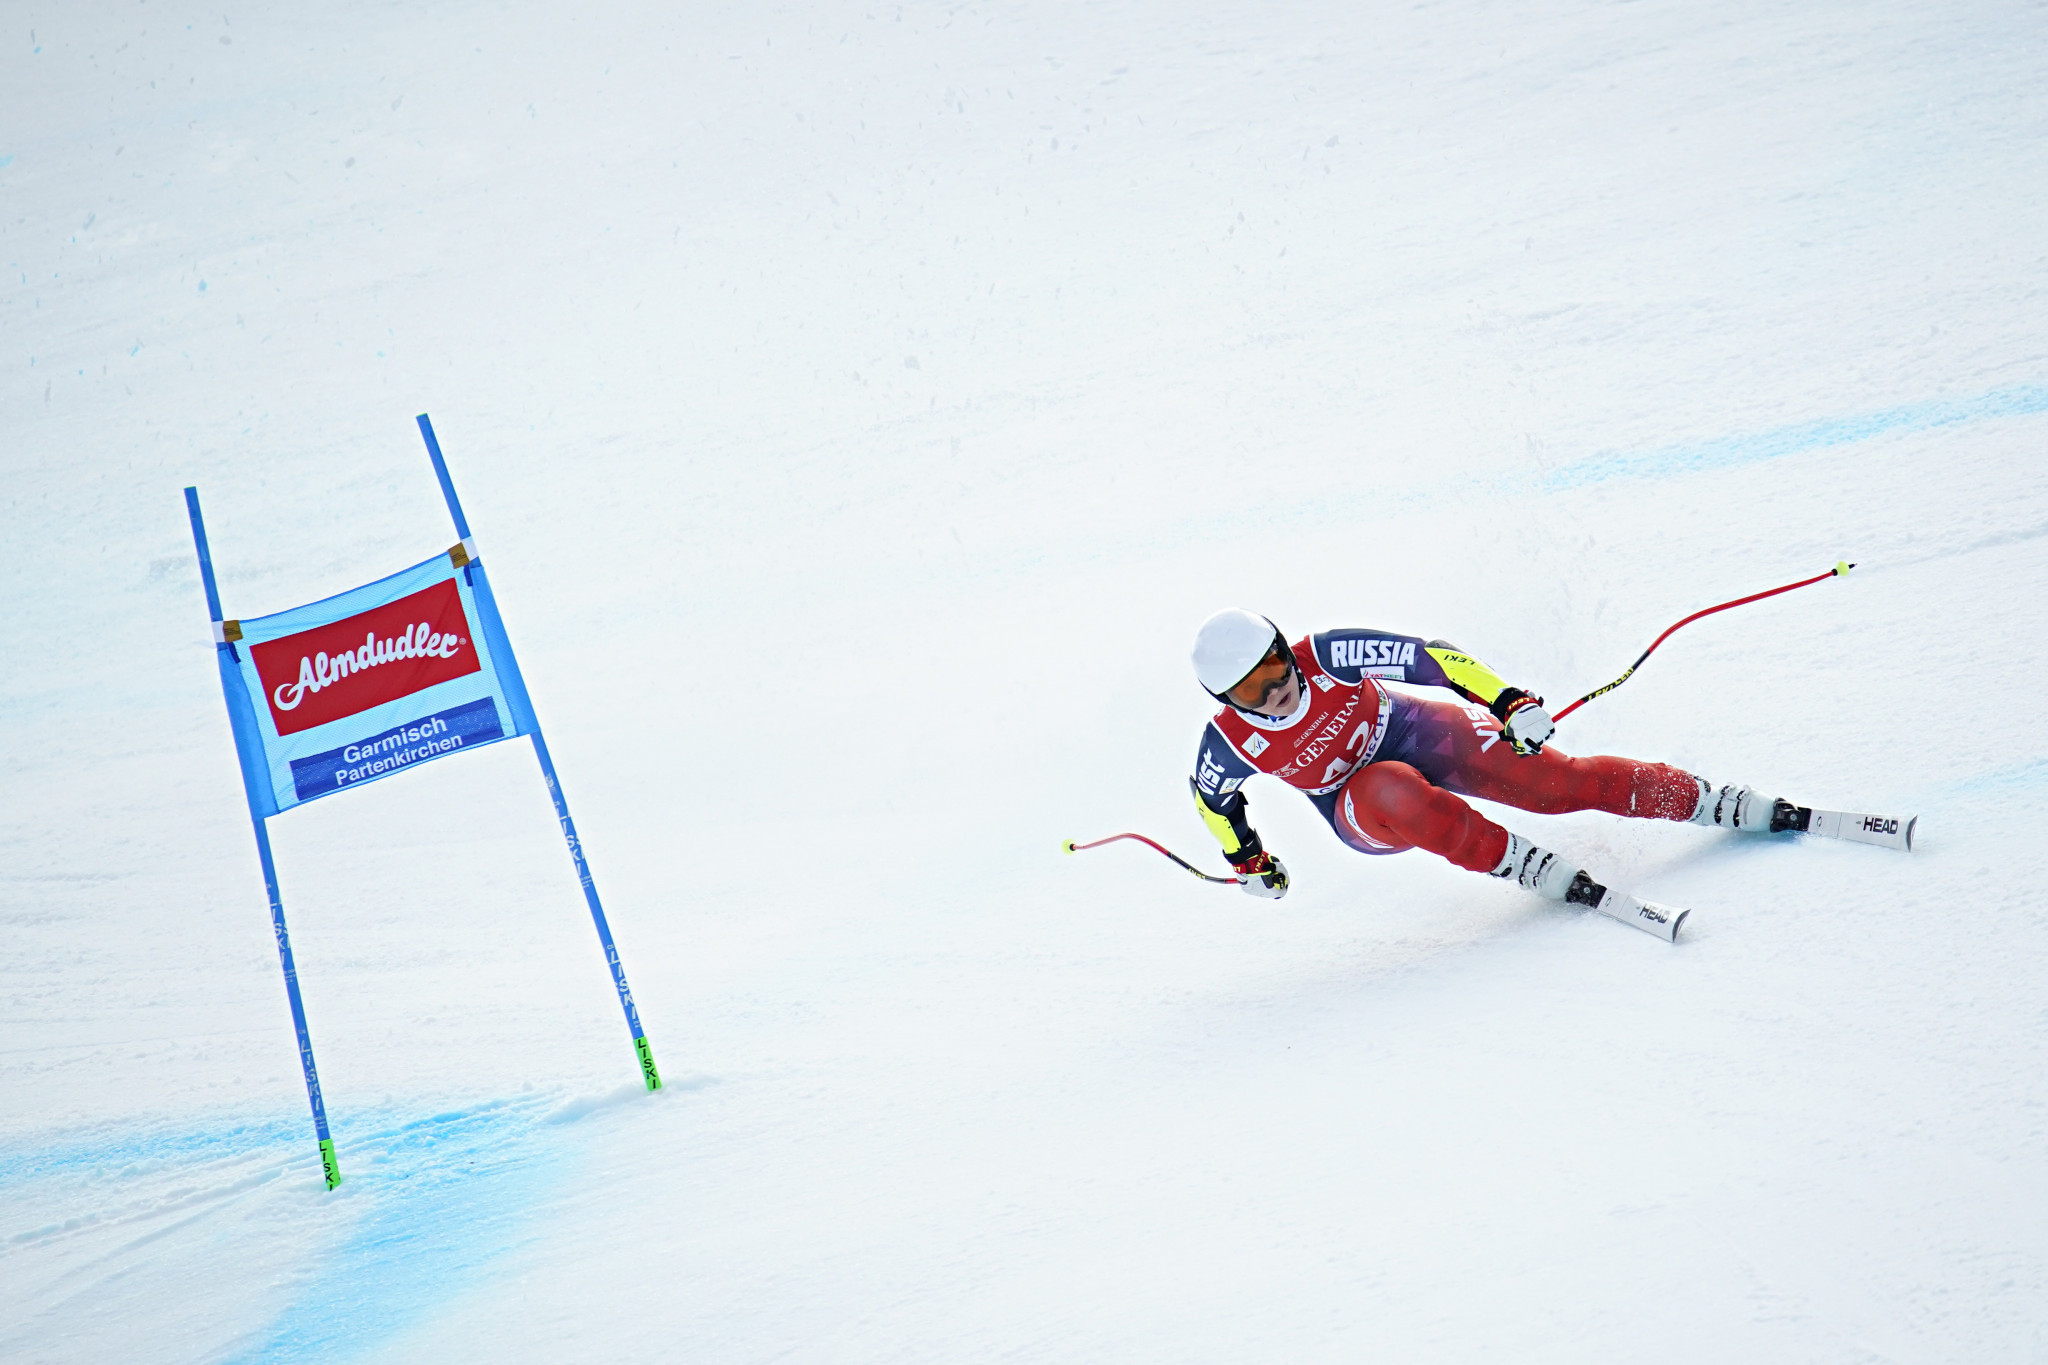 Russian athletes will compete as the Russian Ski Federation at upcoming FIS World Championships ©Getty Images